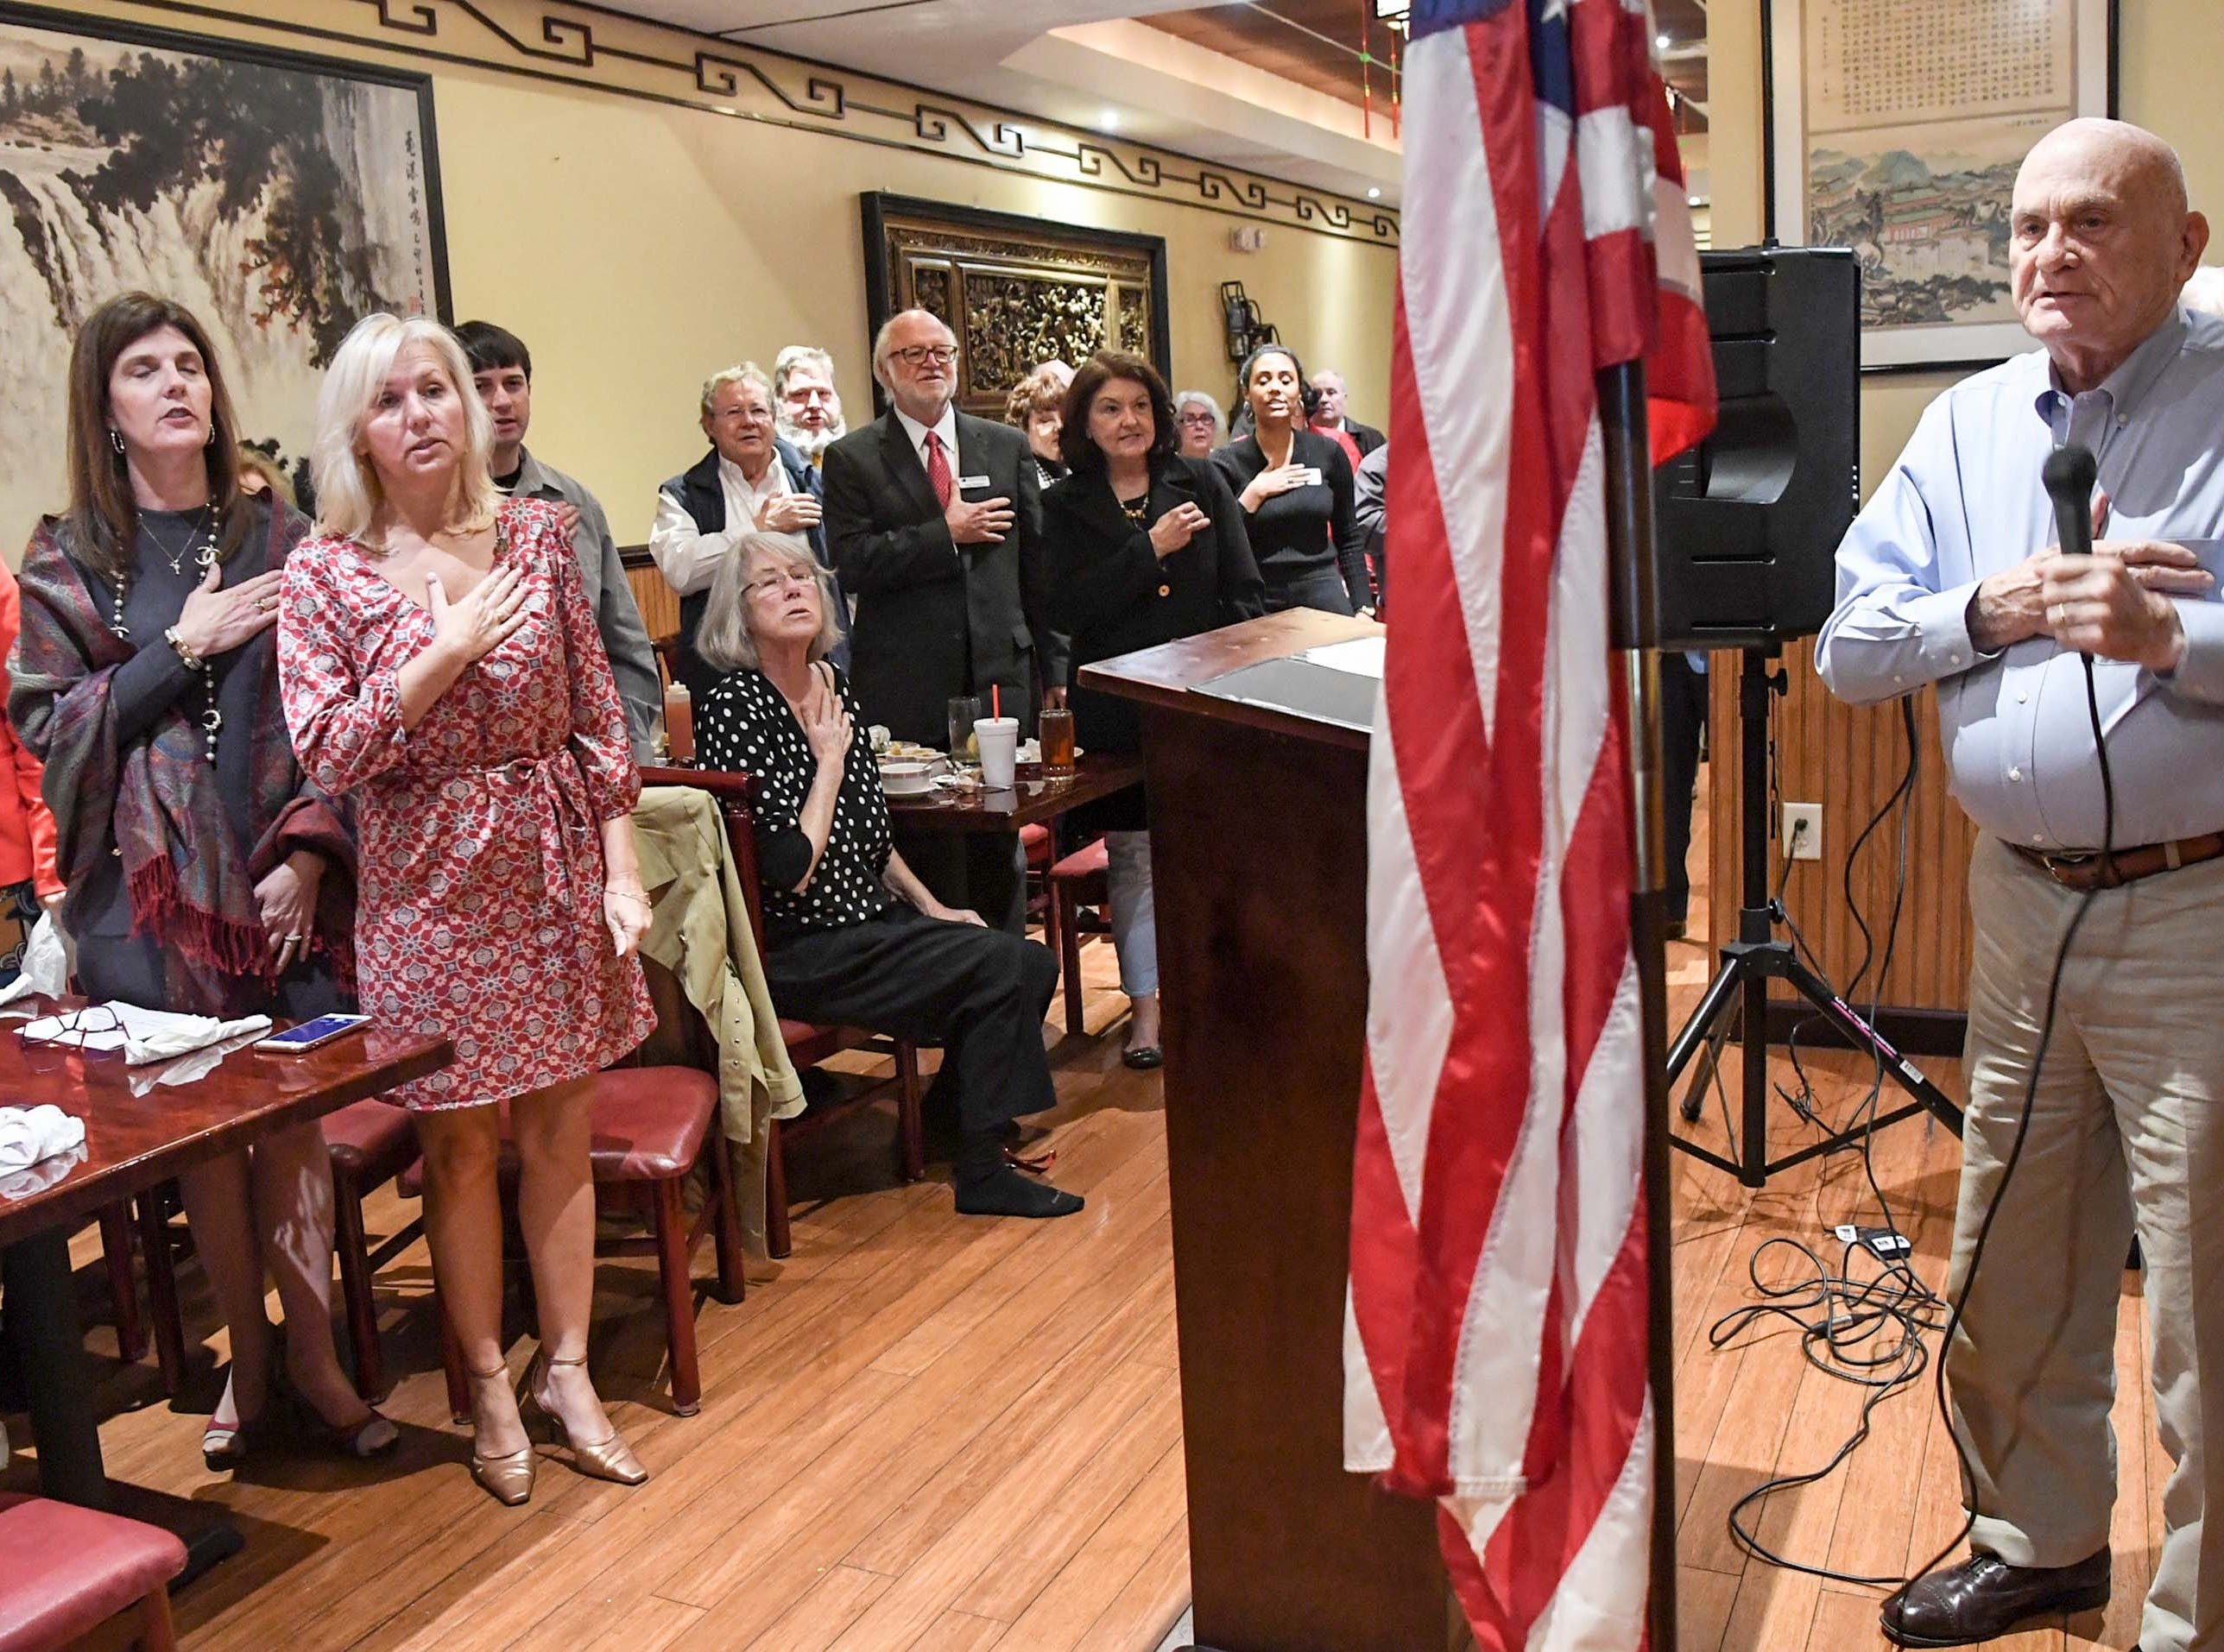 State Lt. Gov. Pamela Evette, left, joins in the Pledge of Allegiance by Bob Martin, right, of Anderson at the 1st Monday Club at Master's Wok in Anderson Monday.